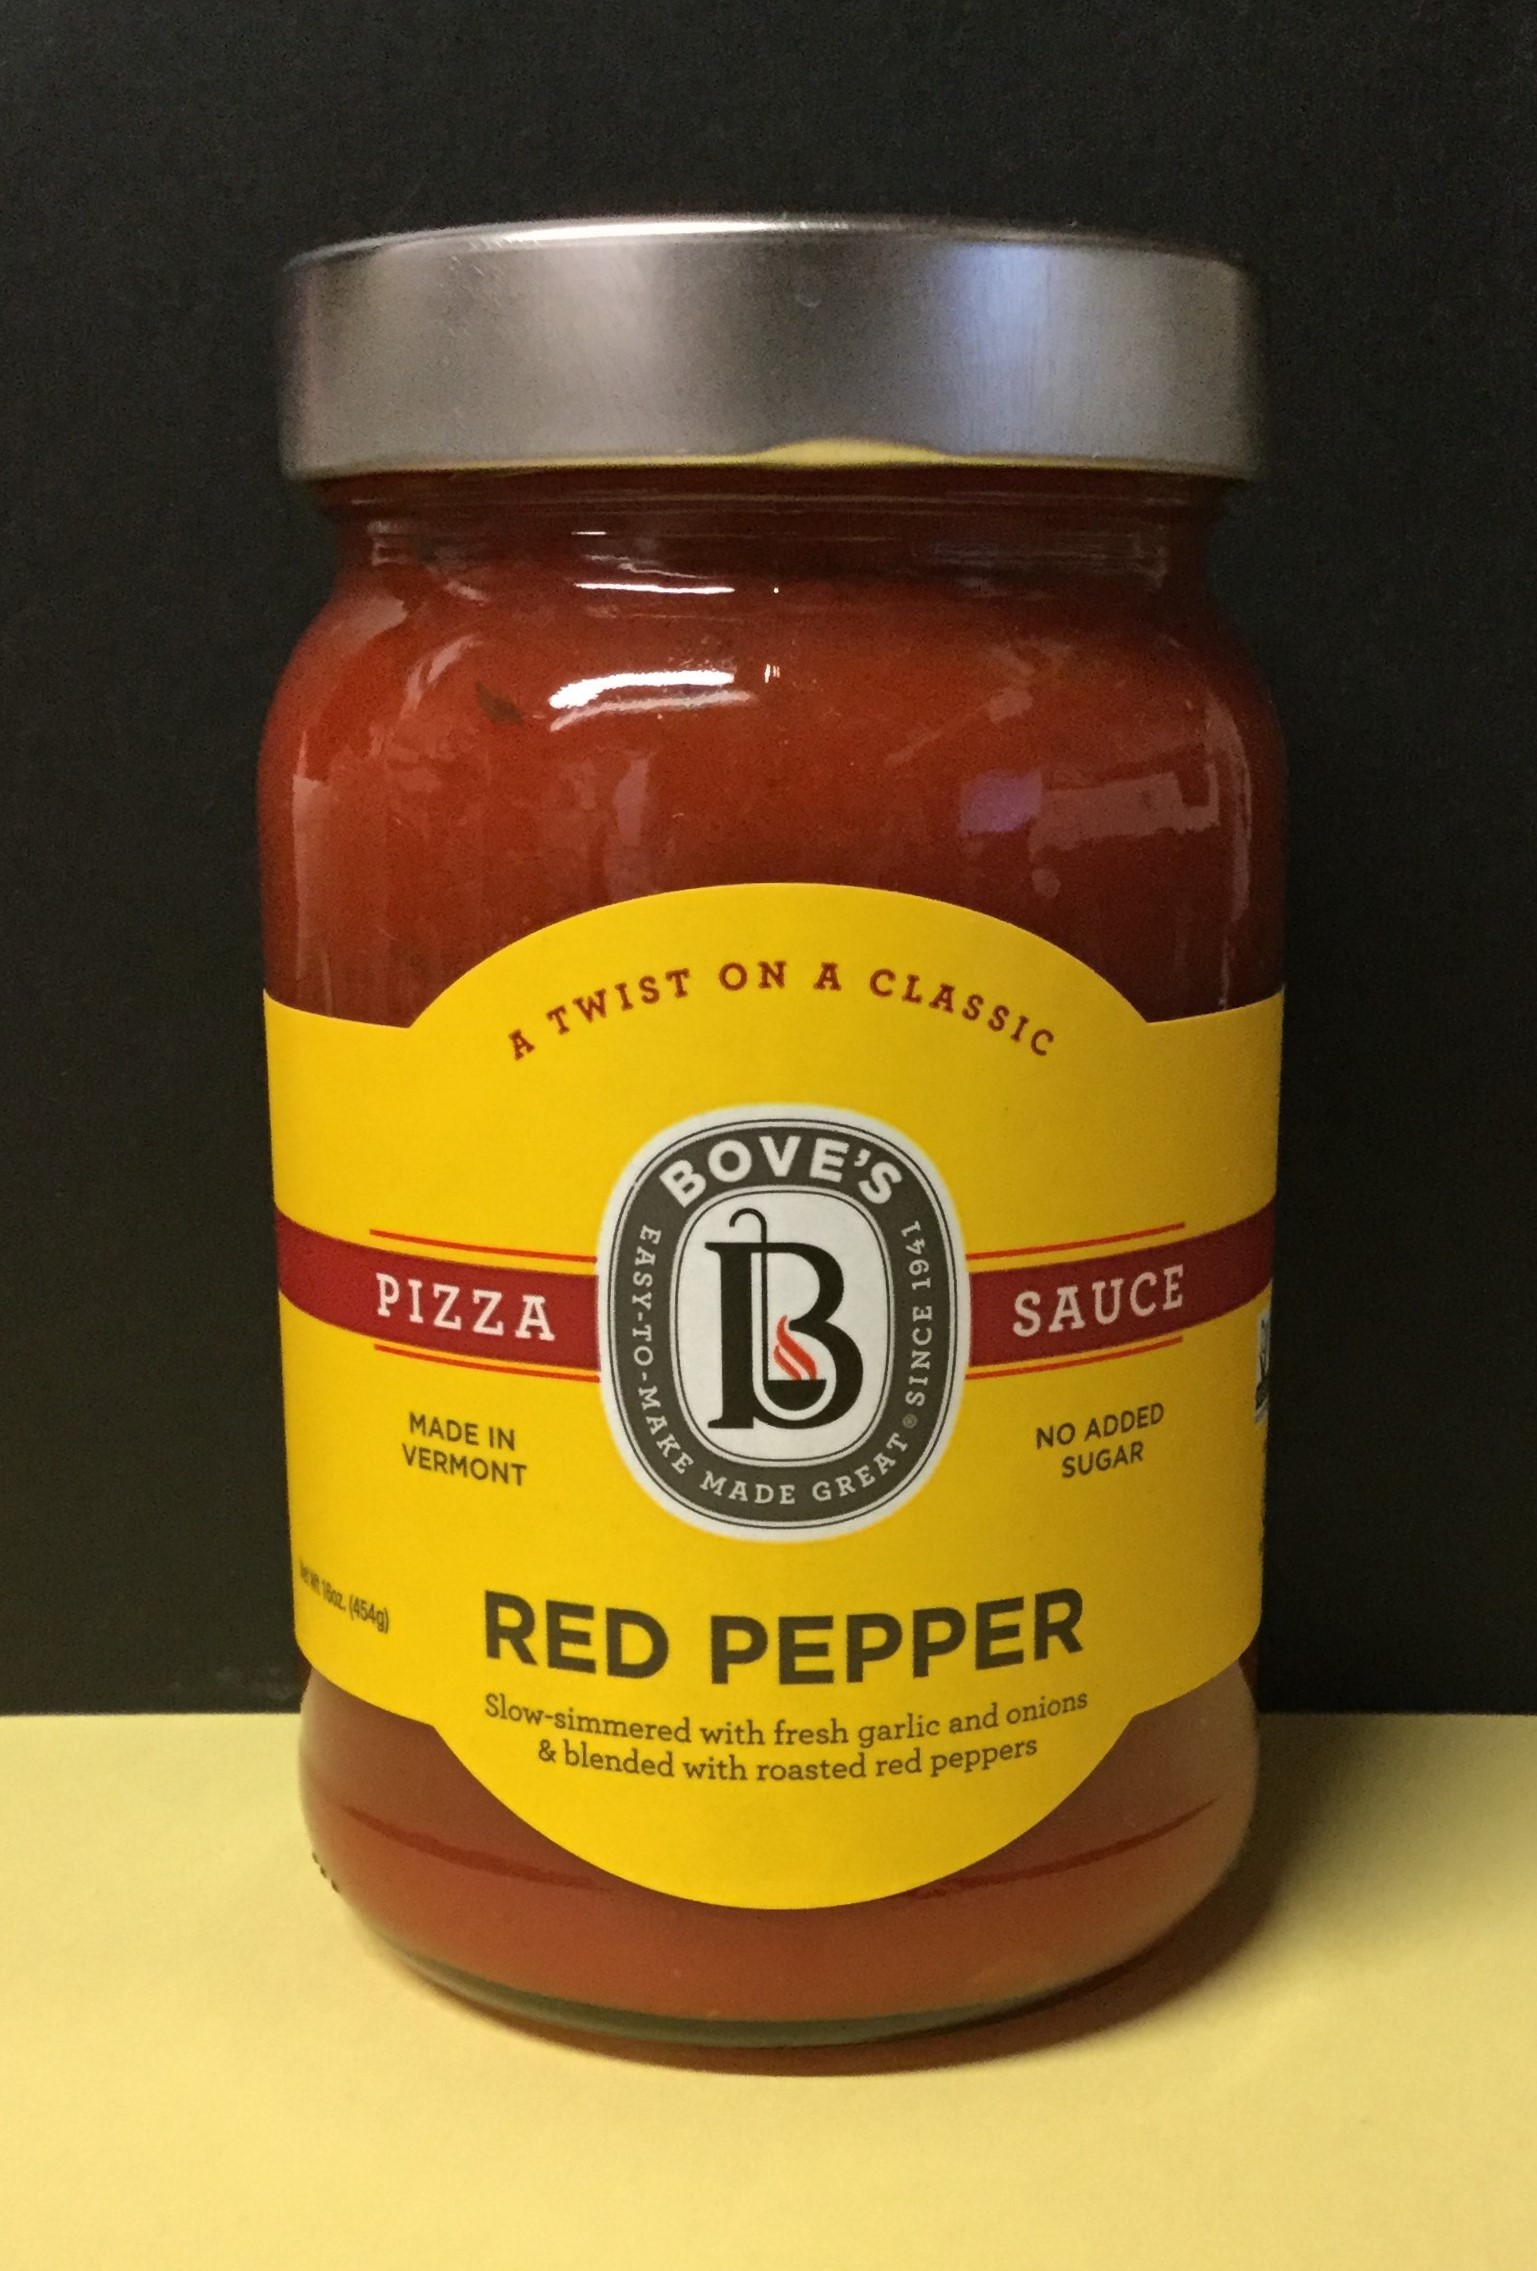 BOVE'S Red Pepper Pizza Sauce